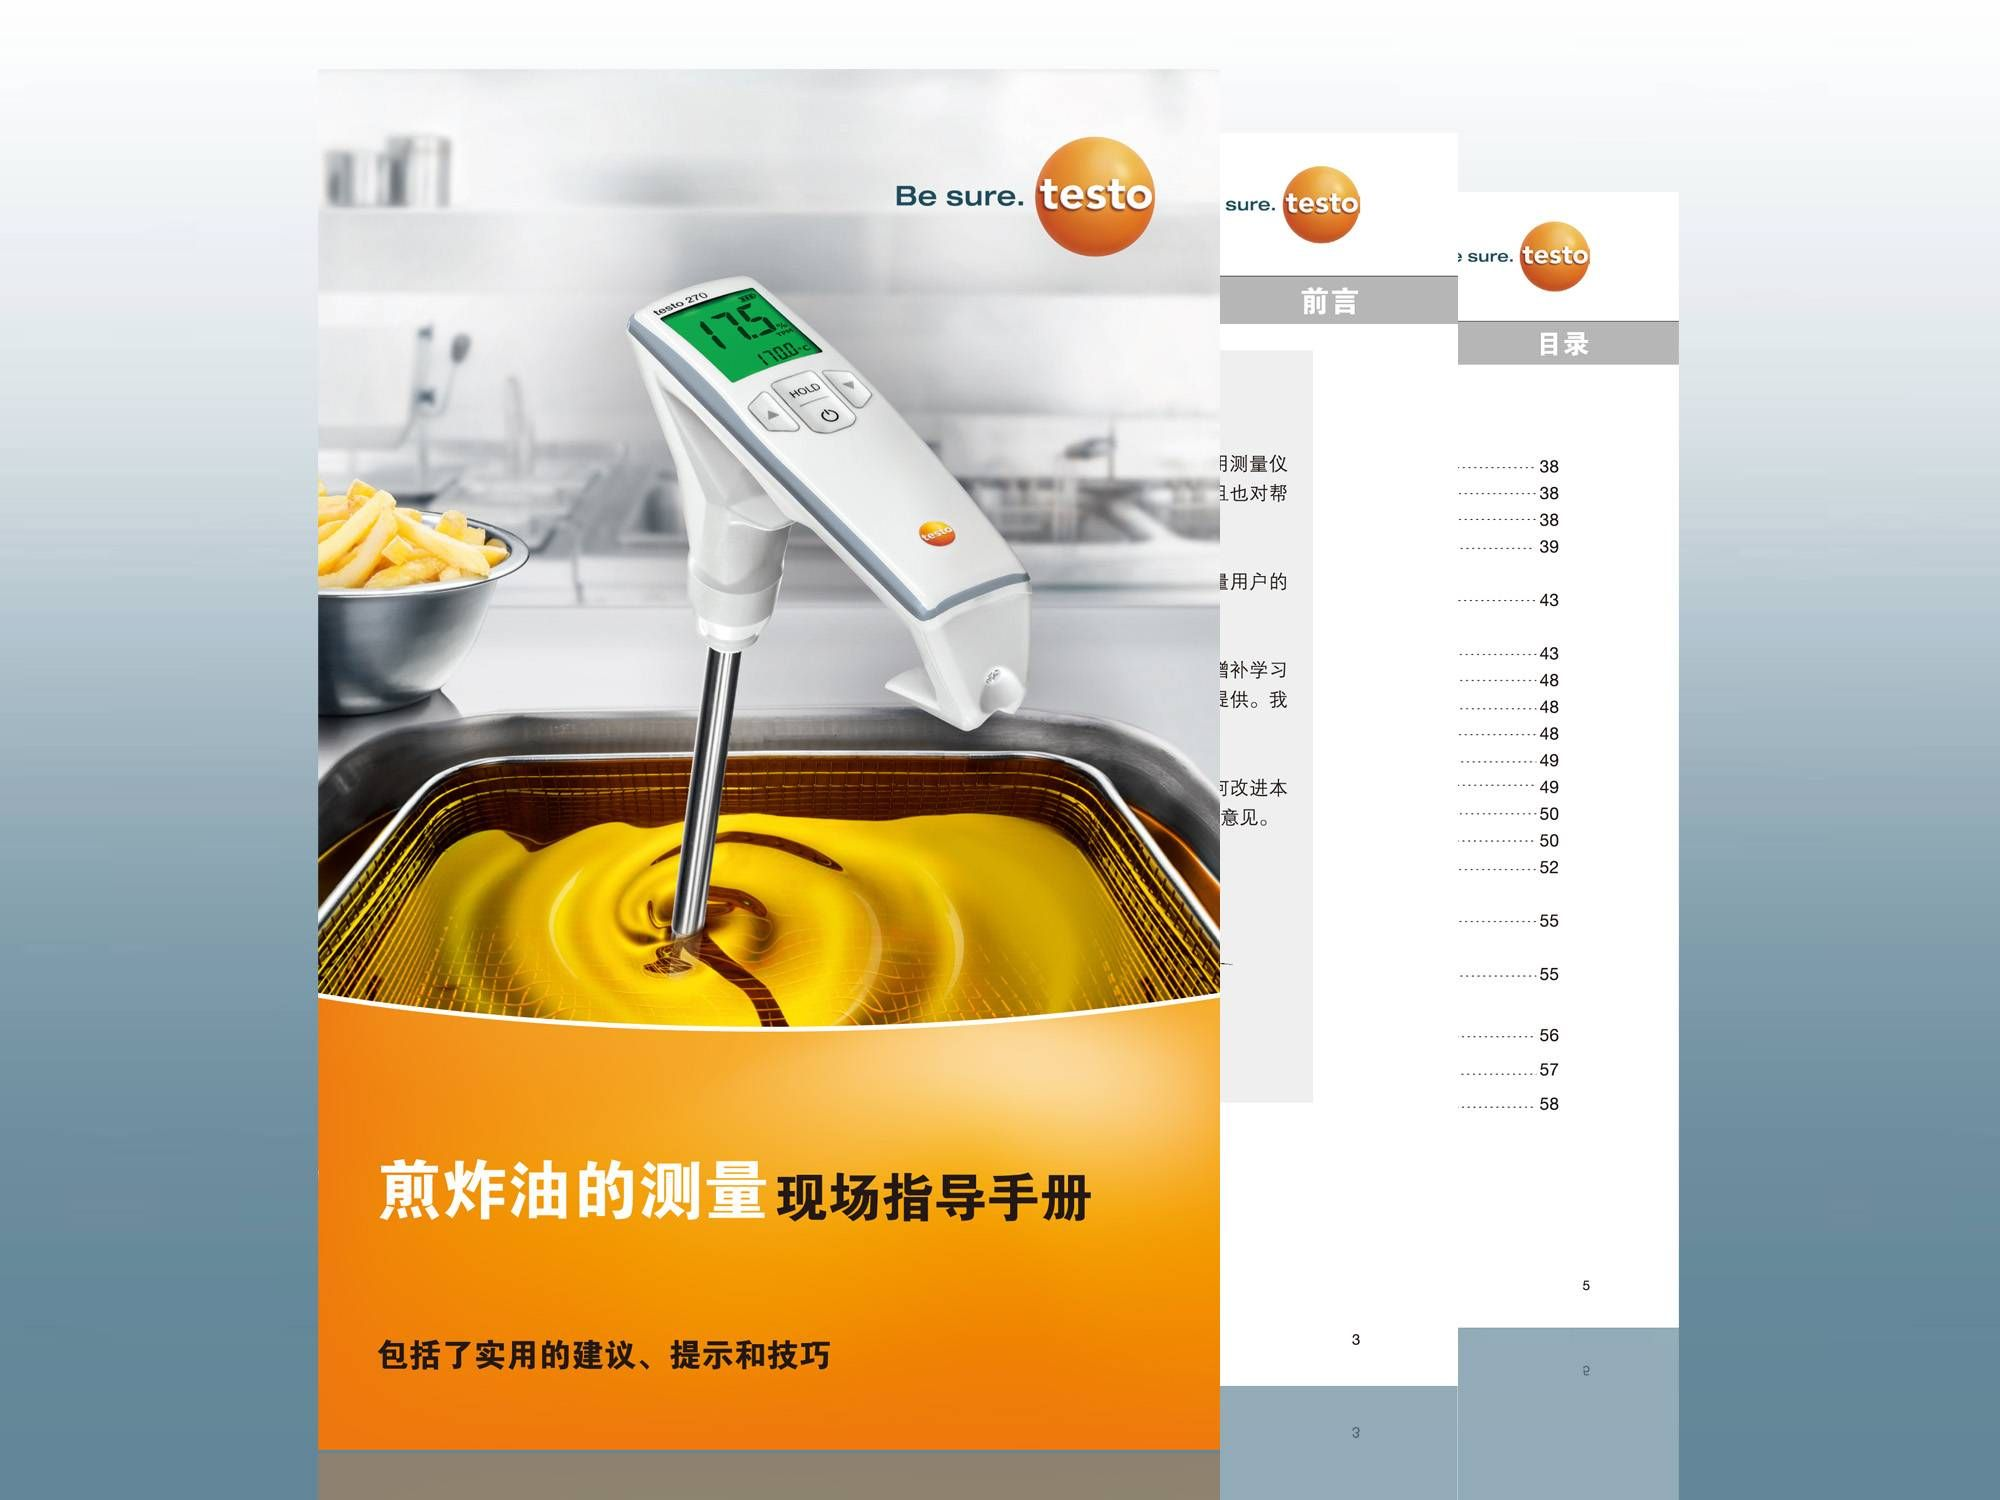 cn-20170913-download_guide_cooking_oil_2000x1500.jpg